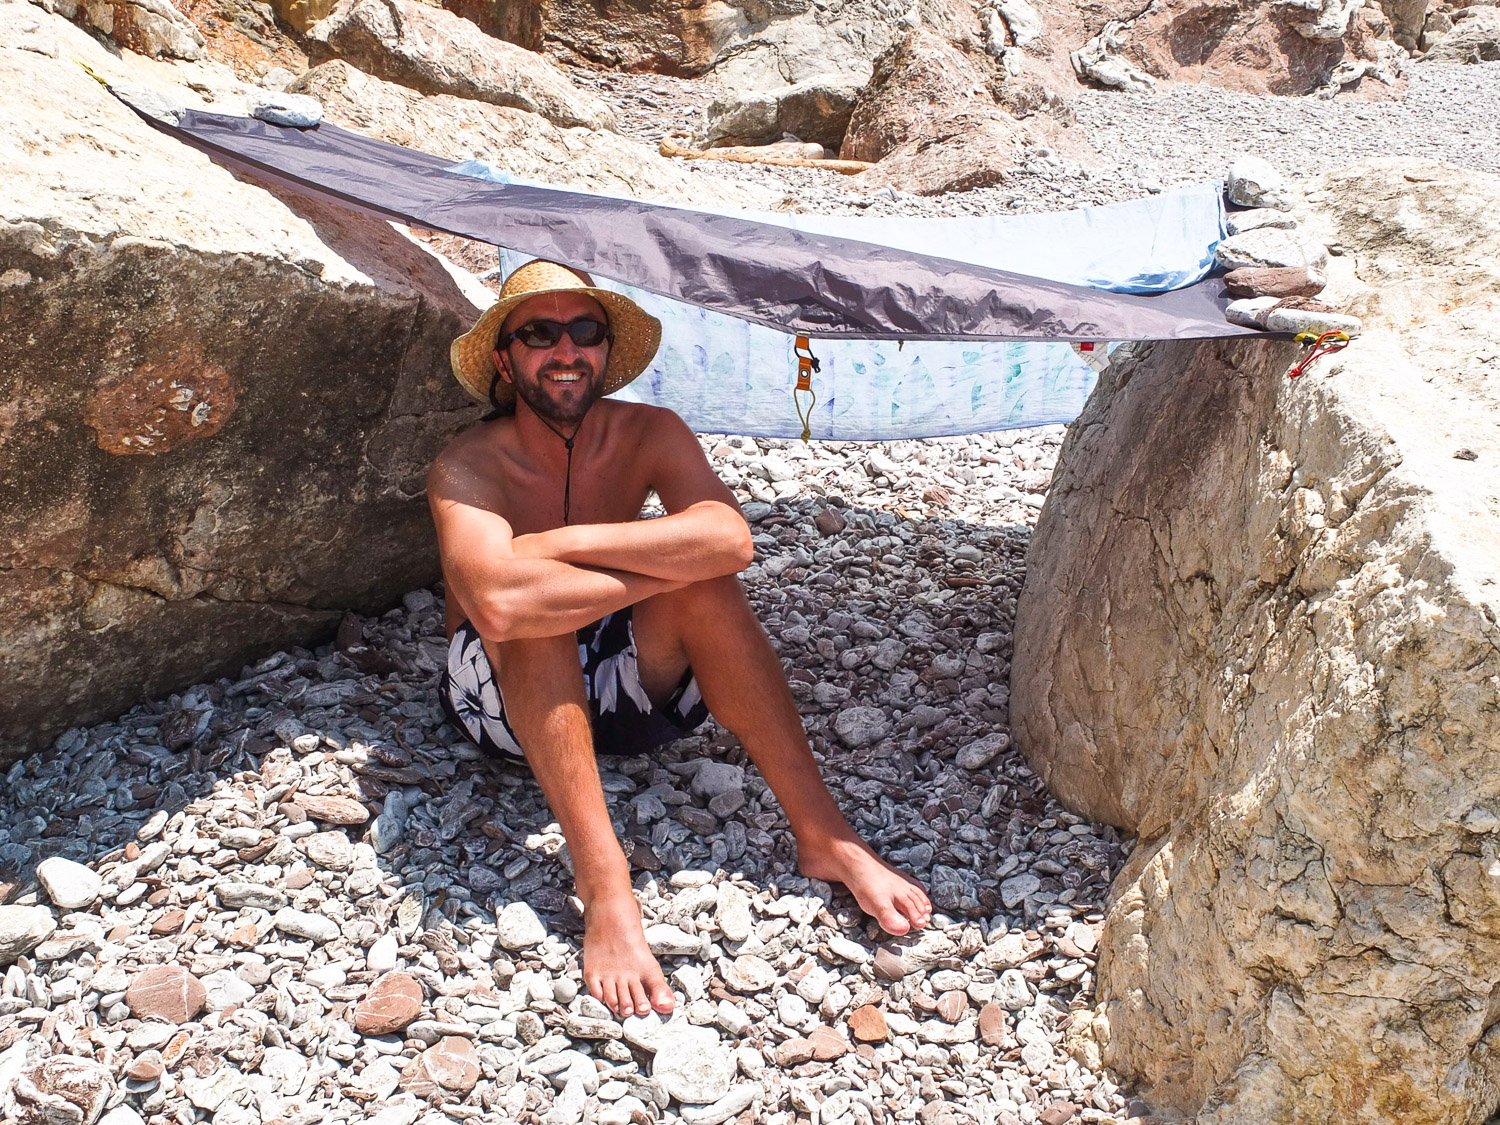 Man sheltering under a tarp, during a sea kayaking trip along the Turquoise Coast, Turkey.